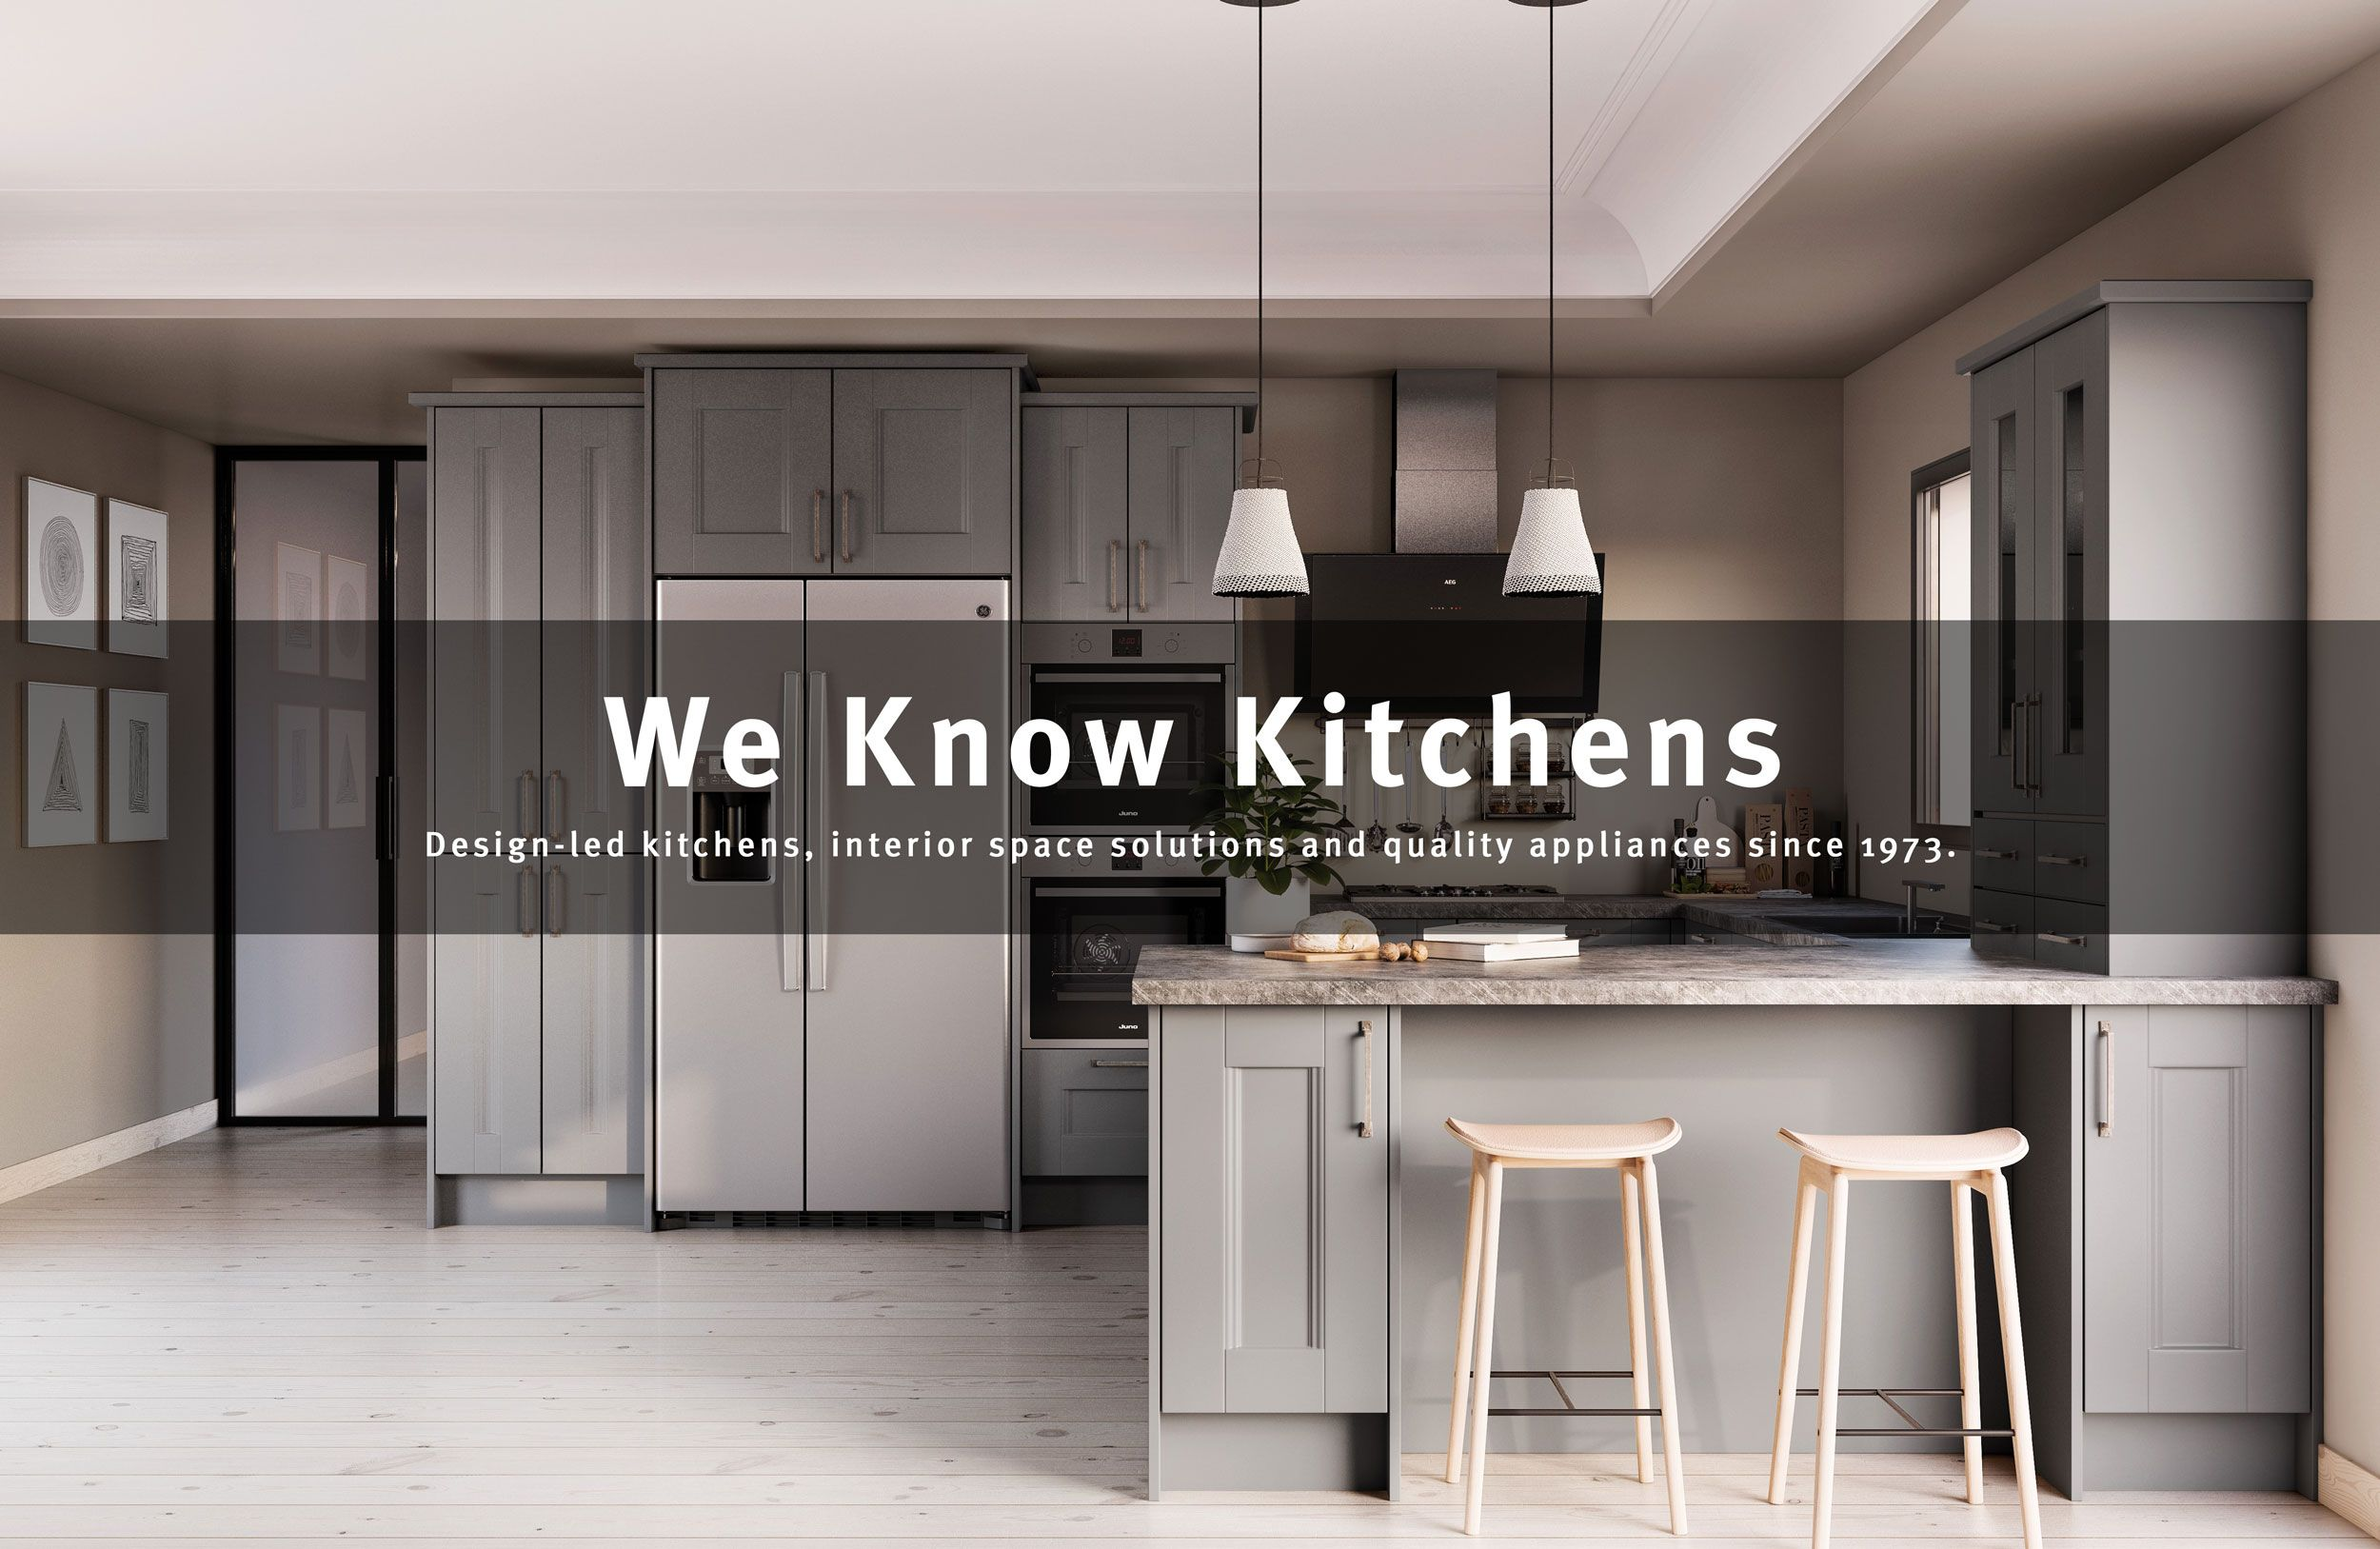 We Know Kitchens2